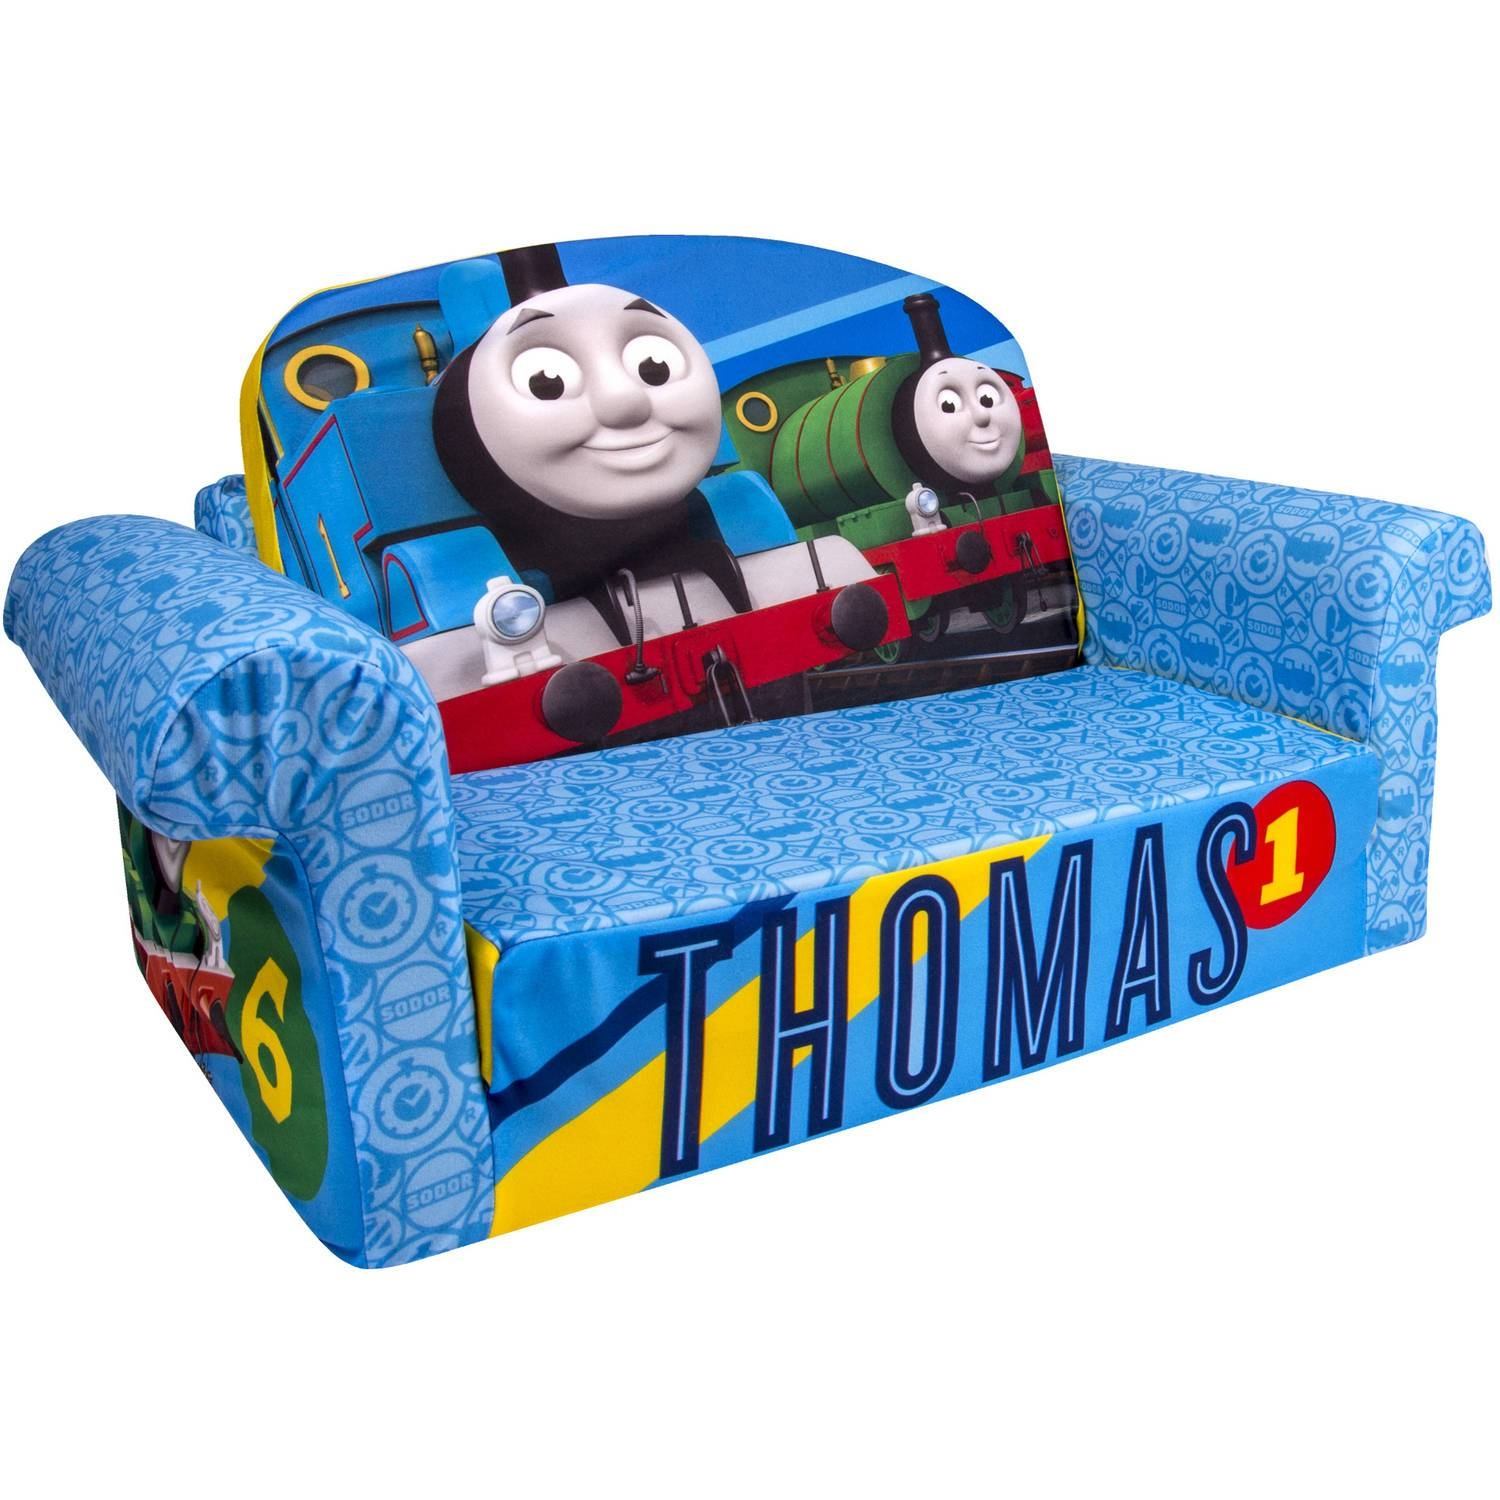 Marshmallow 2-In-1 Flip-Open Sofa, Thomas & Friends - Walmart intended for Flip Open Sofas for Toddlers (Image 9 of 15)